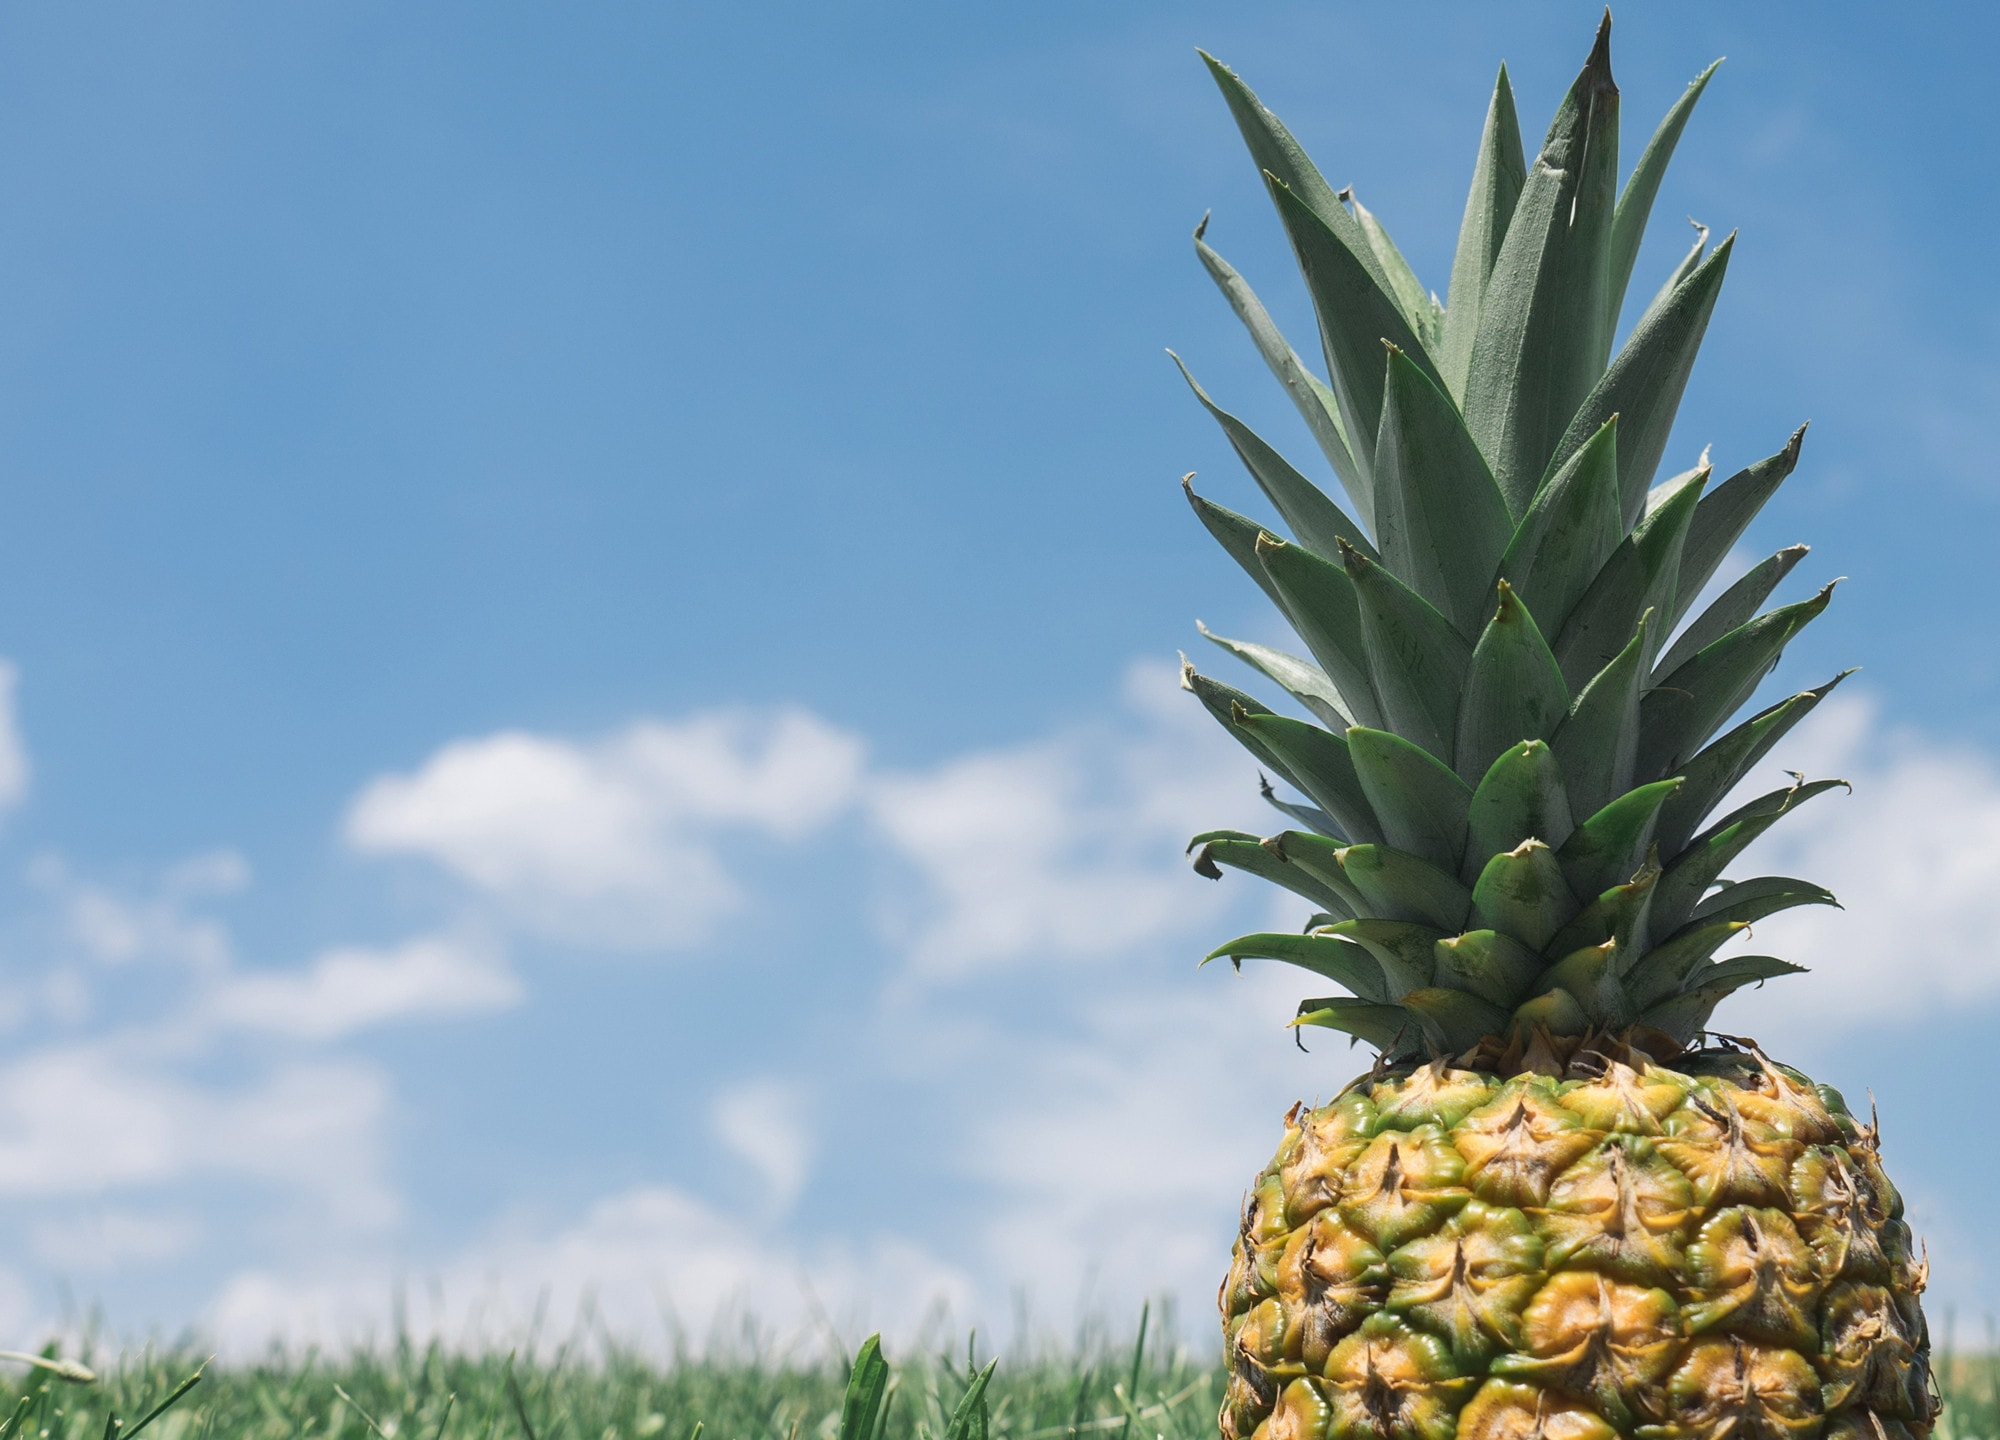 Pineapple Backgrounds